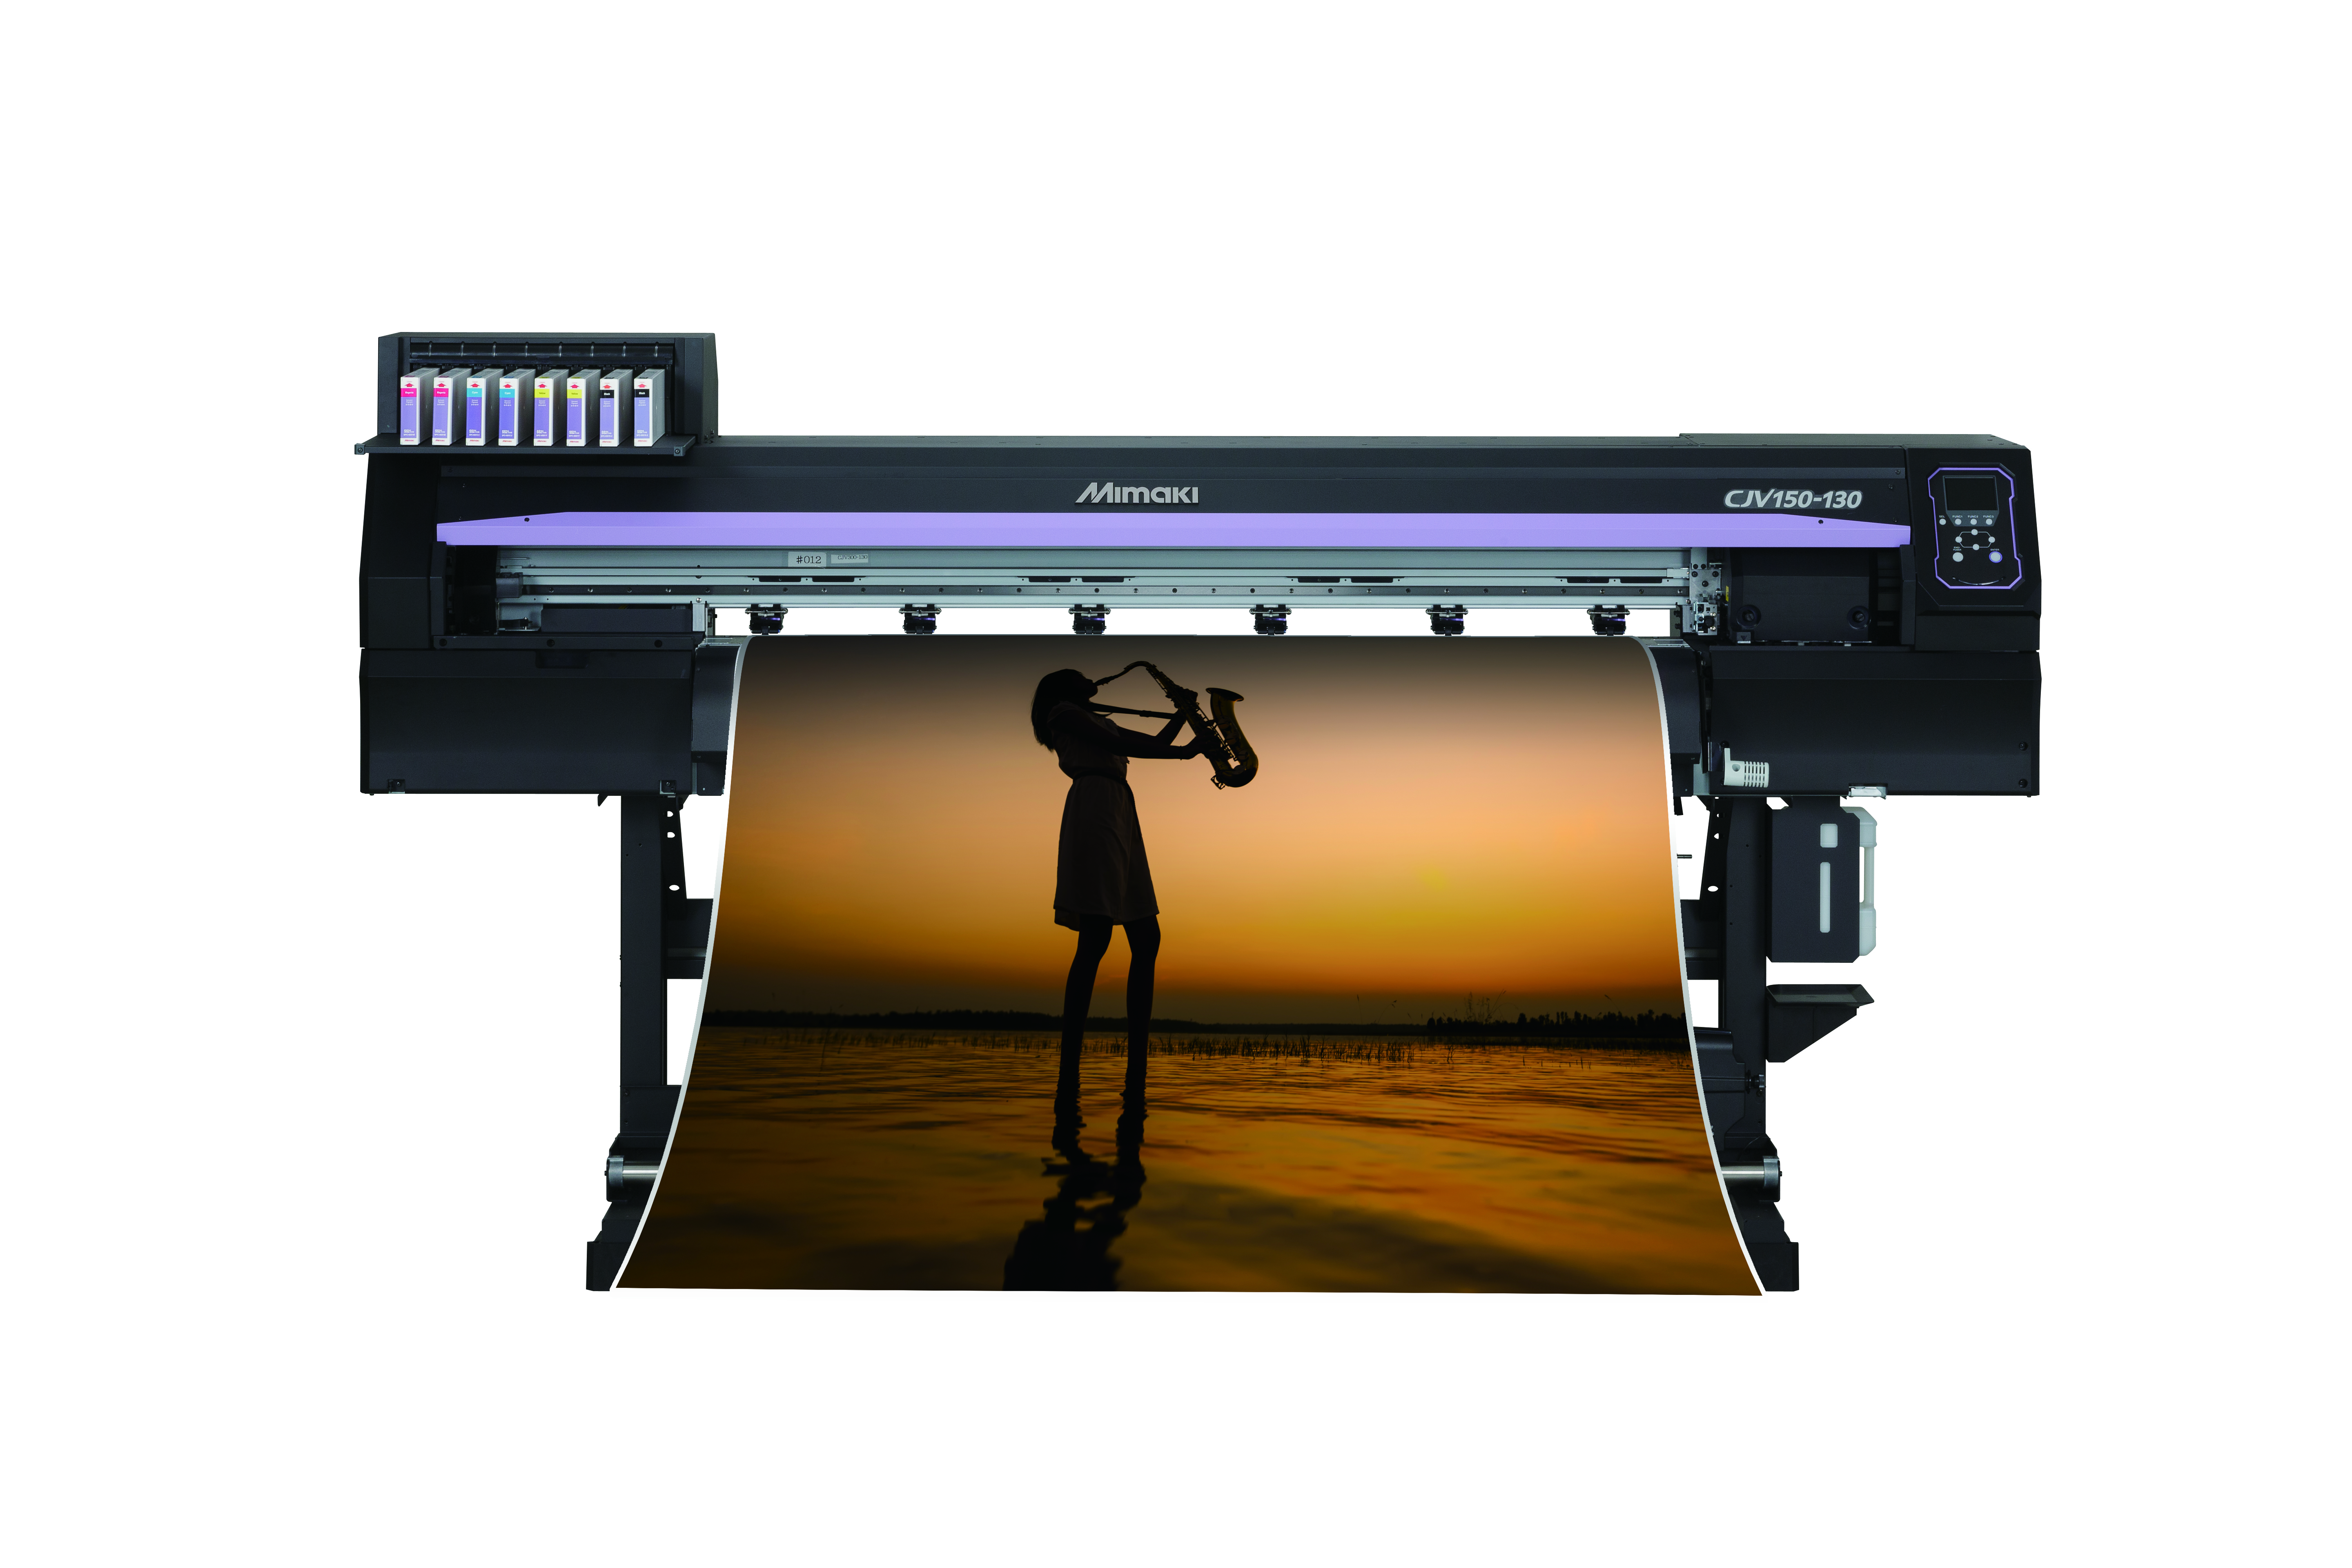 The Mimaki CJV150-130 printer/cutter retails at just £9,995 this autumn